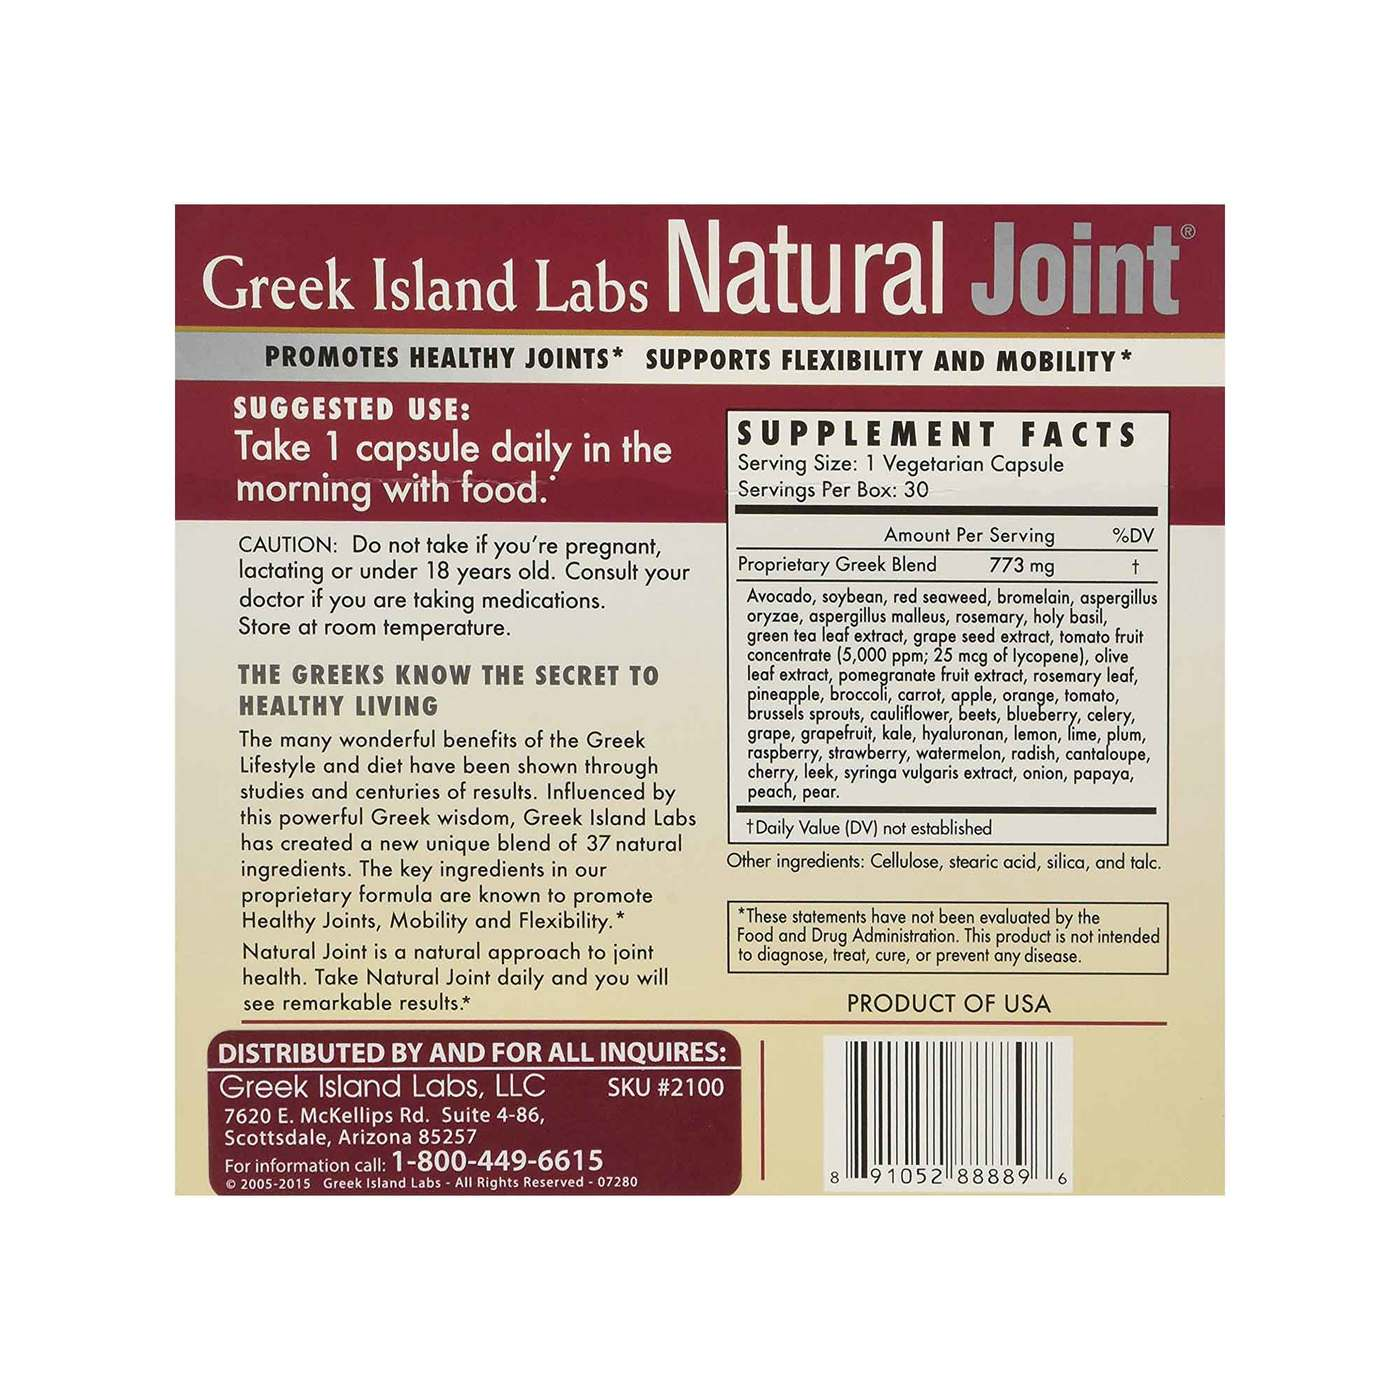 Greek Island Labs Natural Joint Reviews